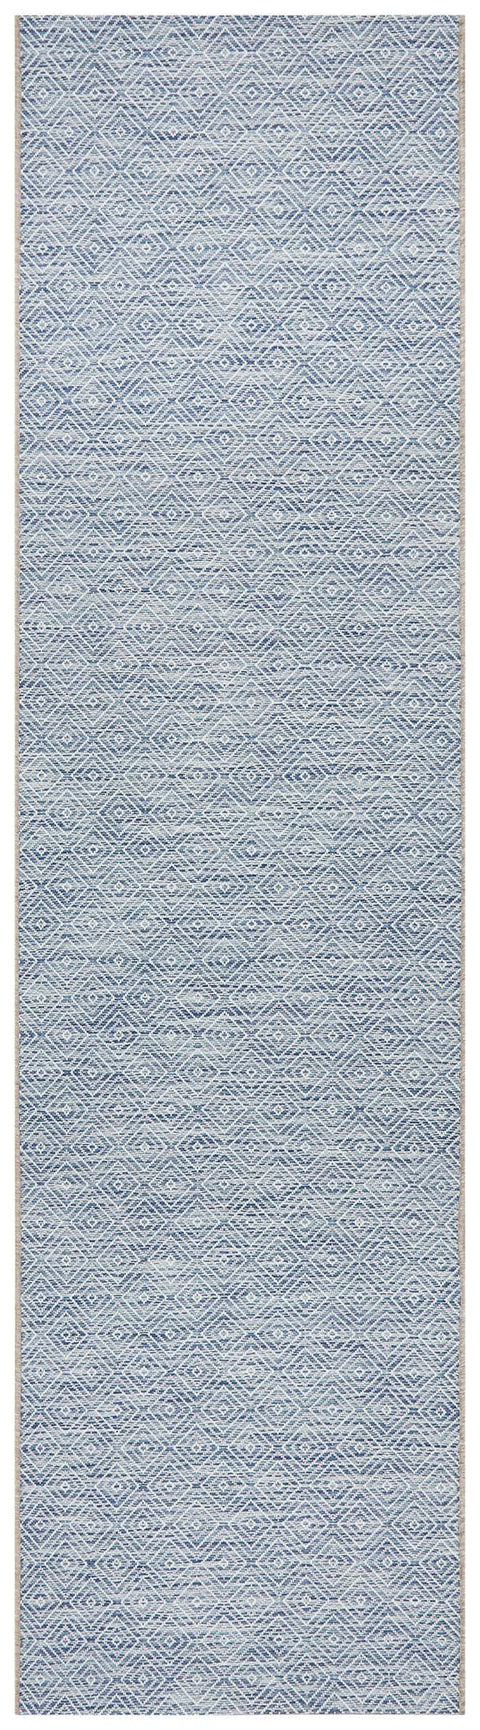 Belize Blue Diamond Runner Rug